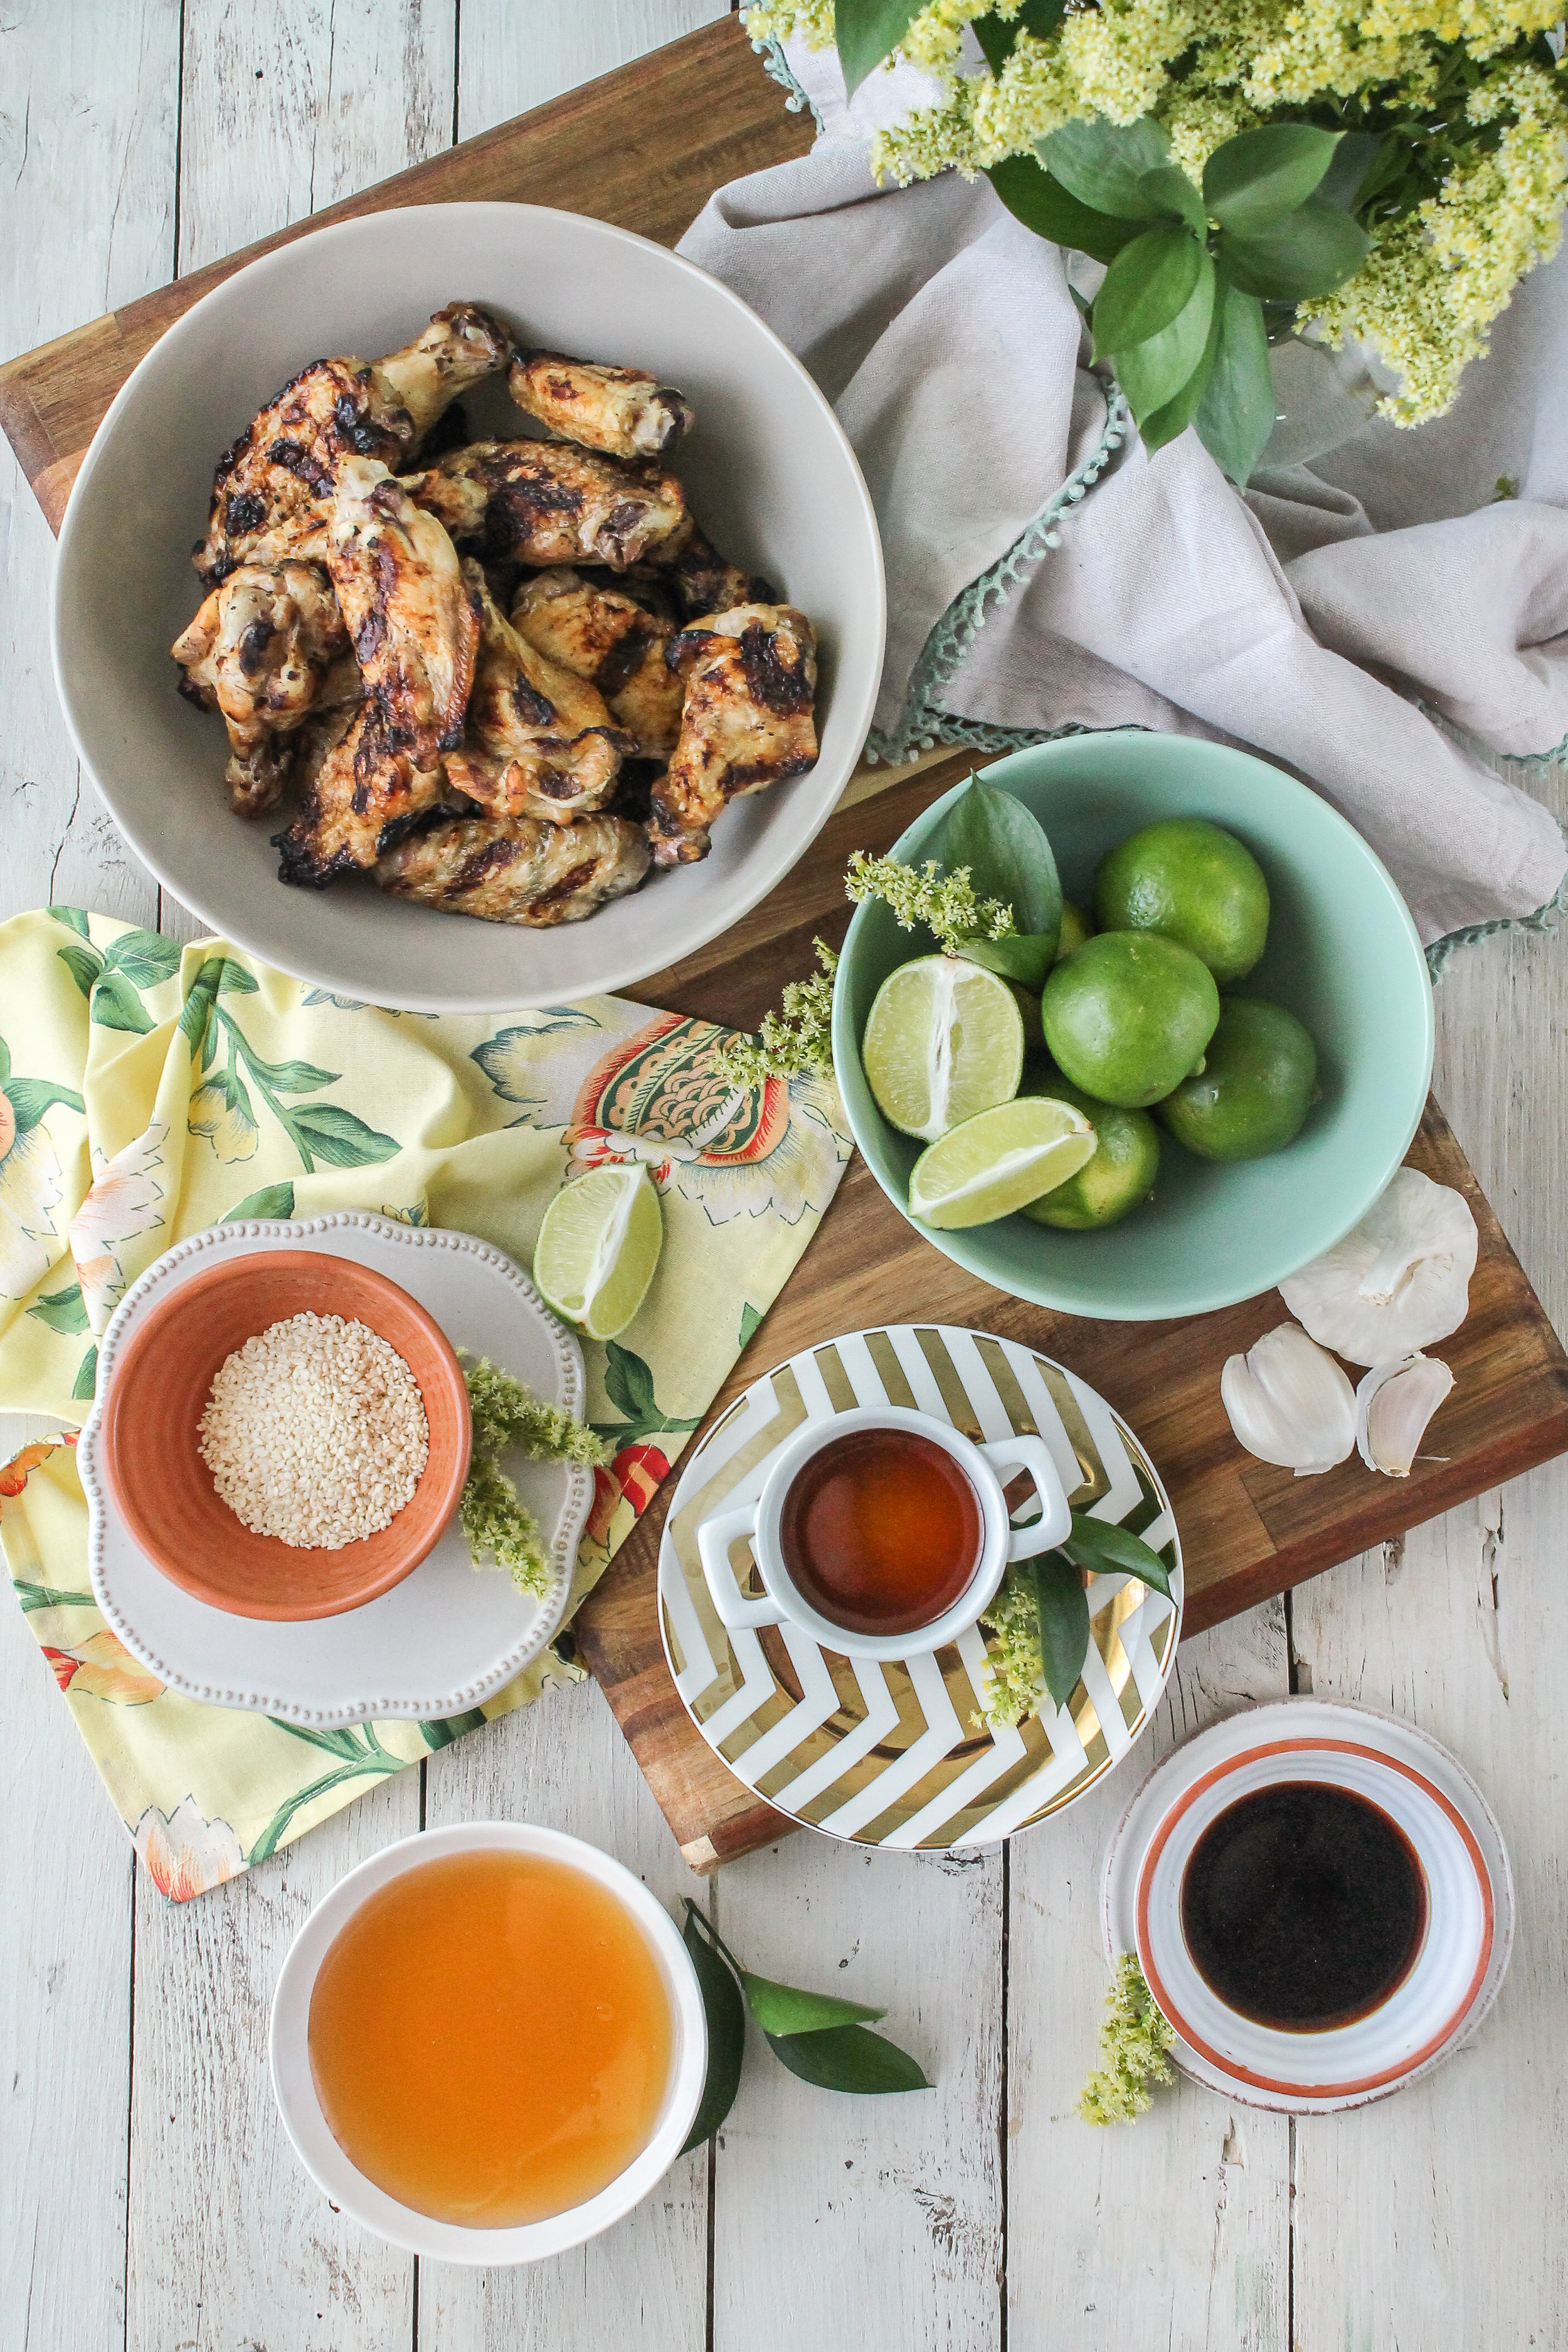 These honey sesame grilled wings are the perfect quick & simple summer meal!  Find the recipe on www.pedanticfoodie.com!